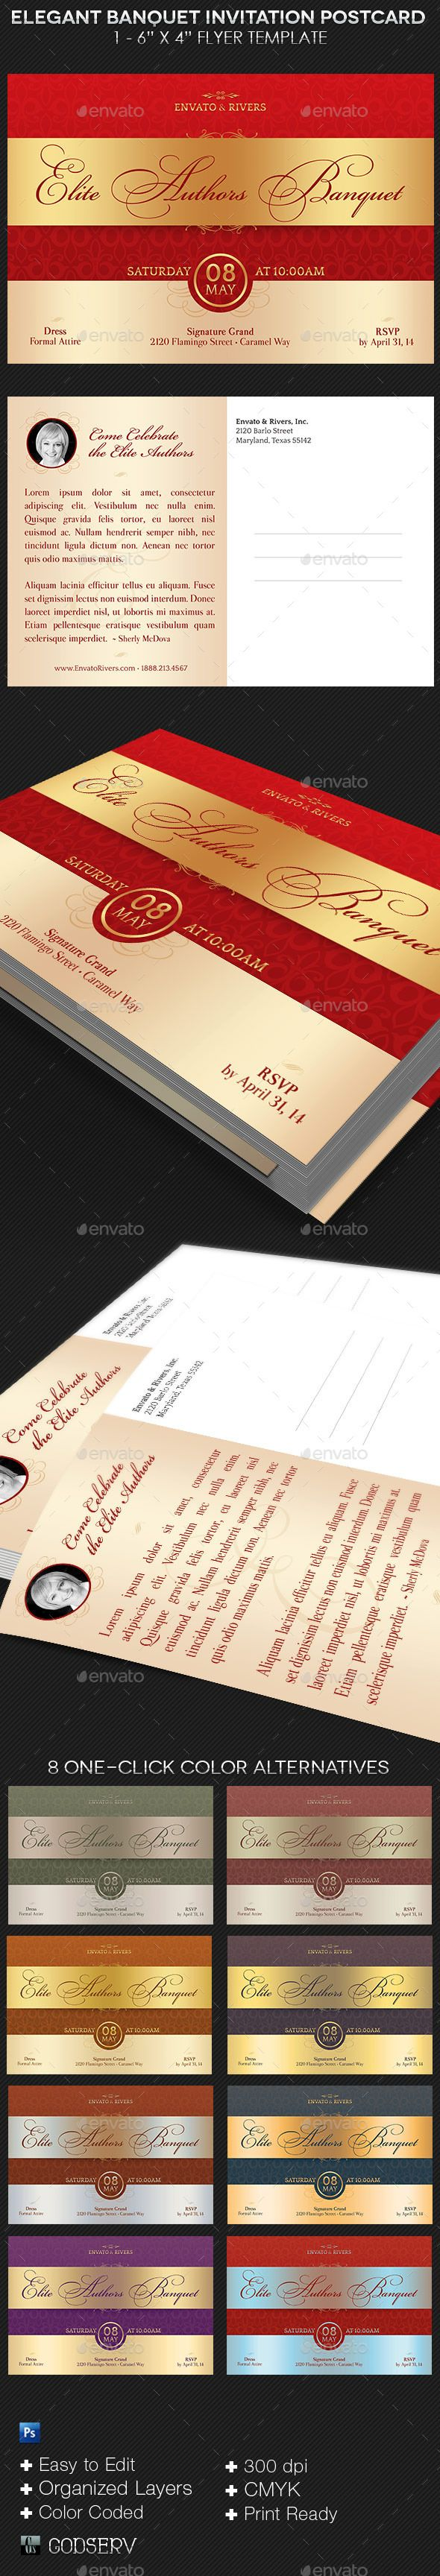 Best Wedding Invitations  Printable Invitations Templates